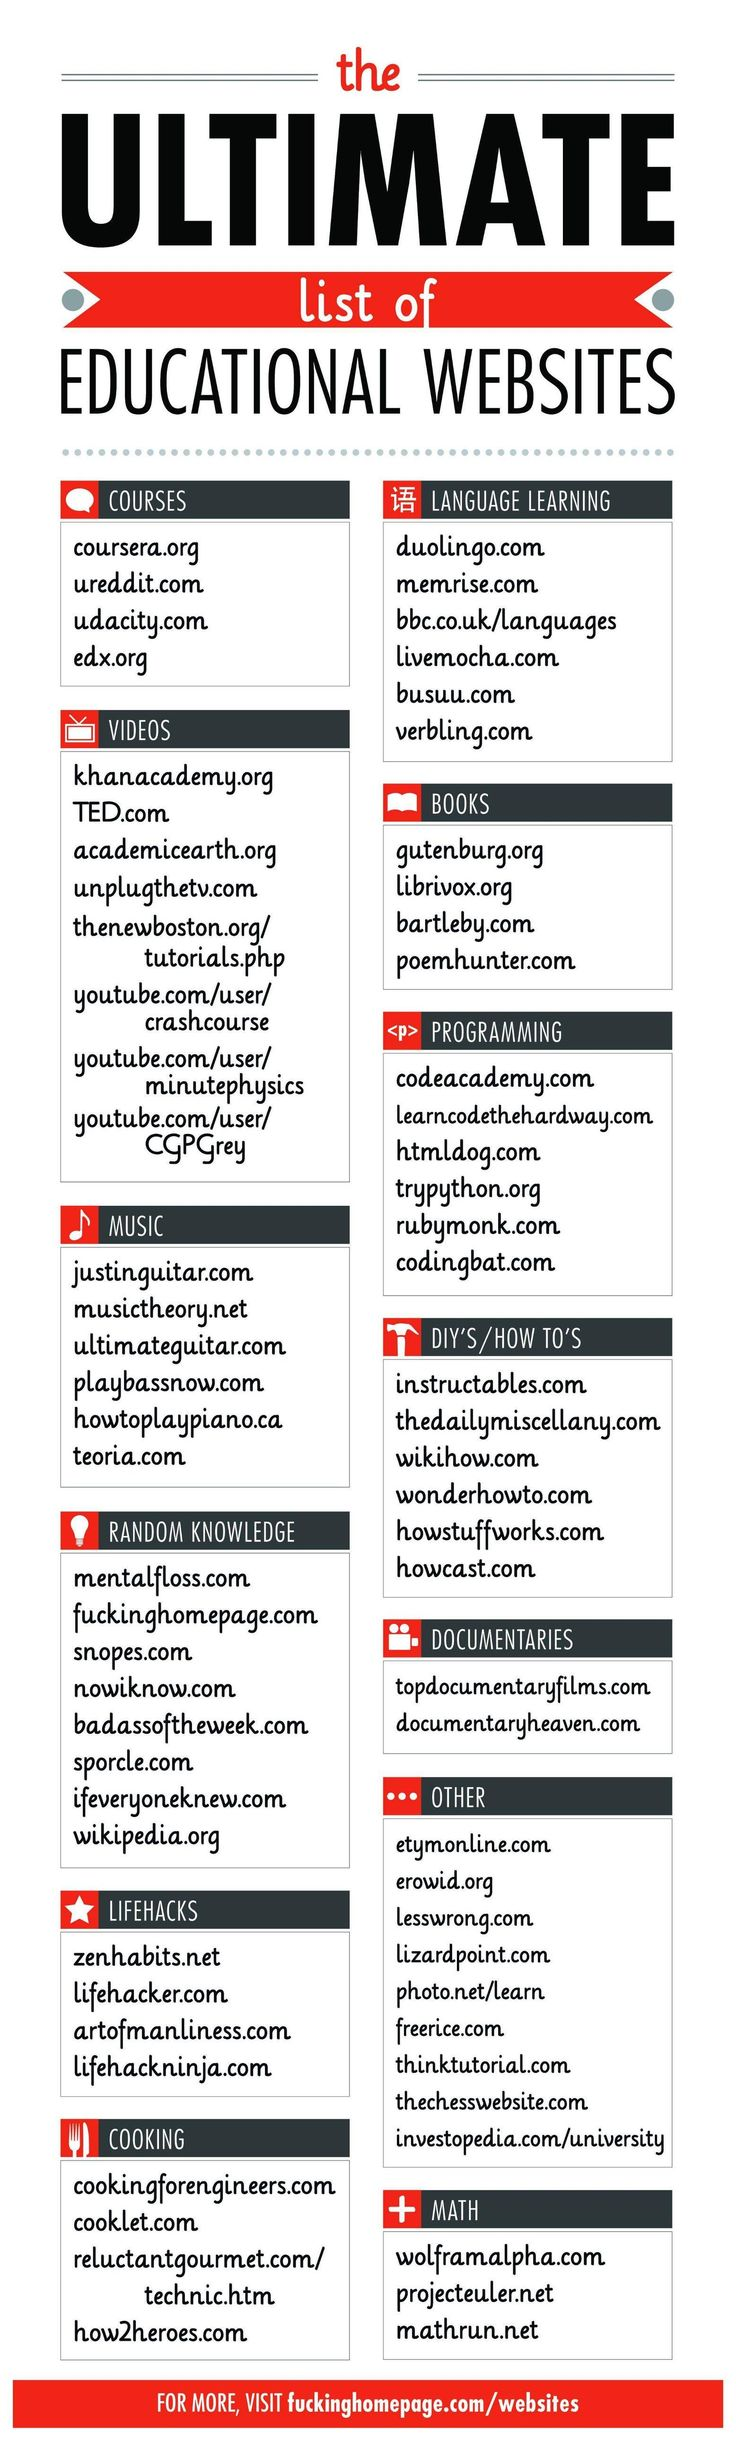 The Ultimate List of Educational Websites via imgur #Infographic #Education #Websites